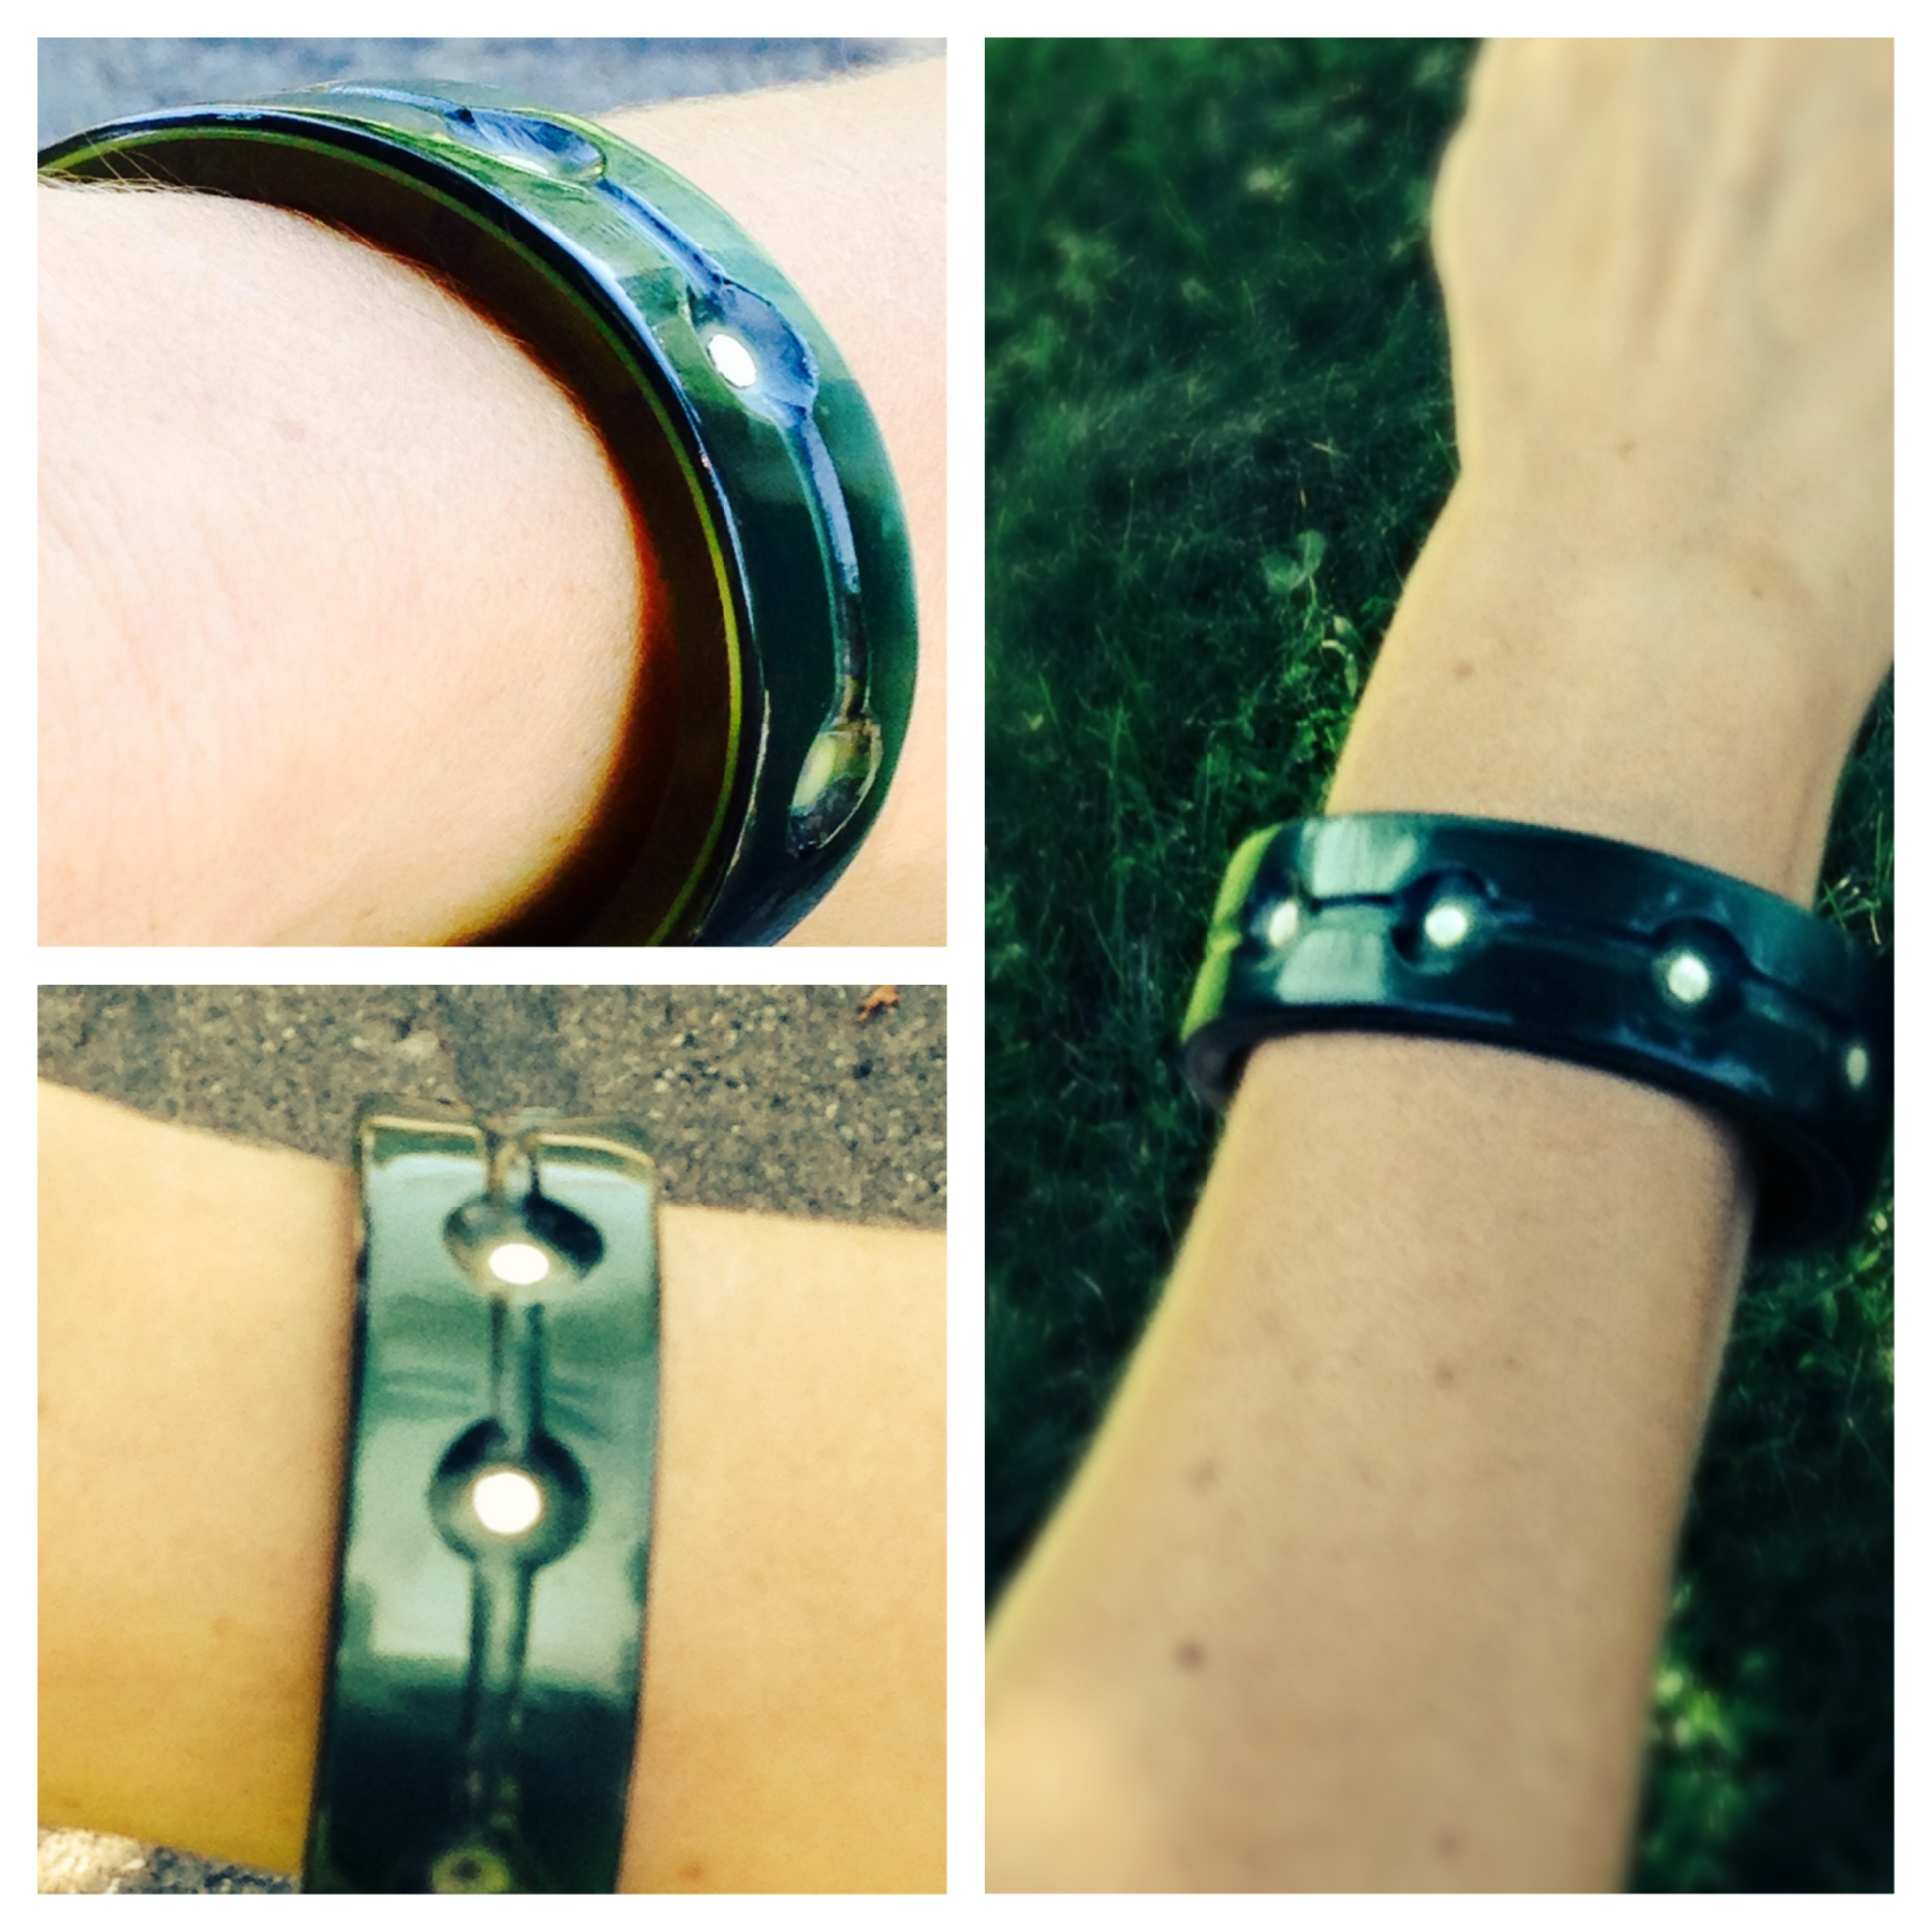 Thanks to Gael Levin For her exquisite modeling of her new Cellulose Acetate Bracelet!